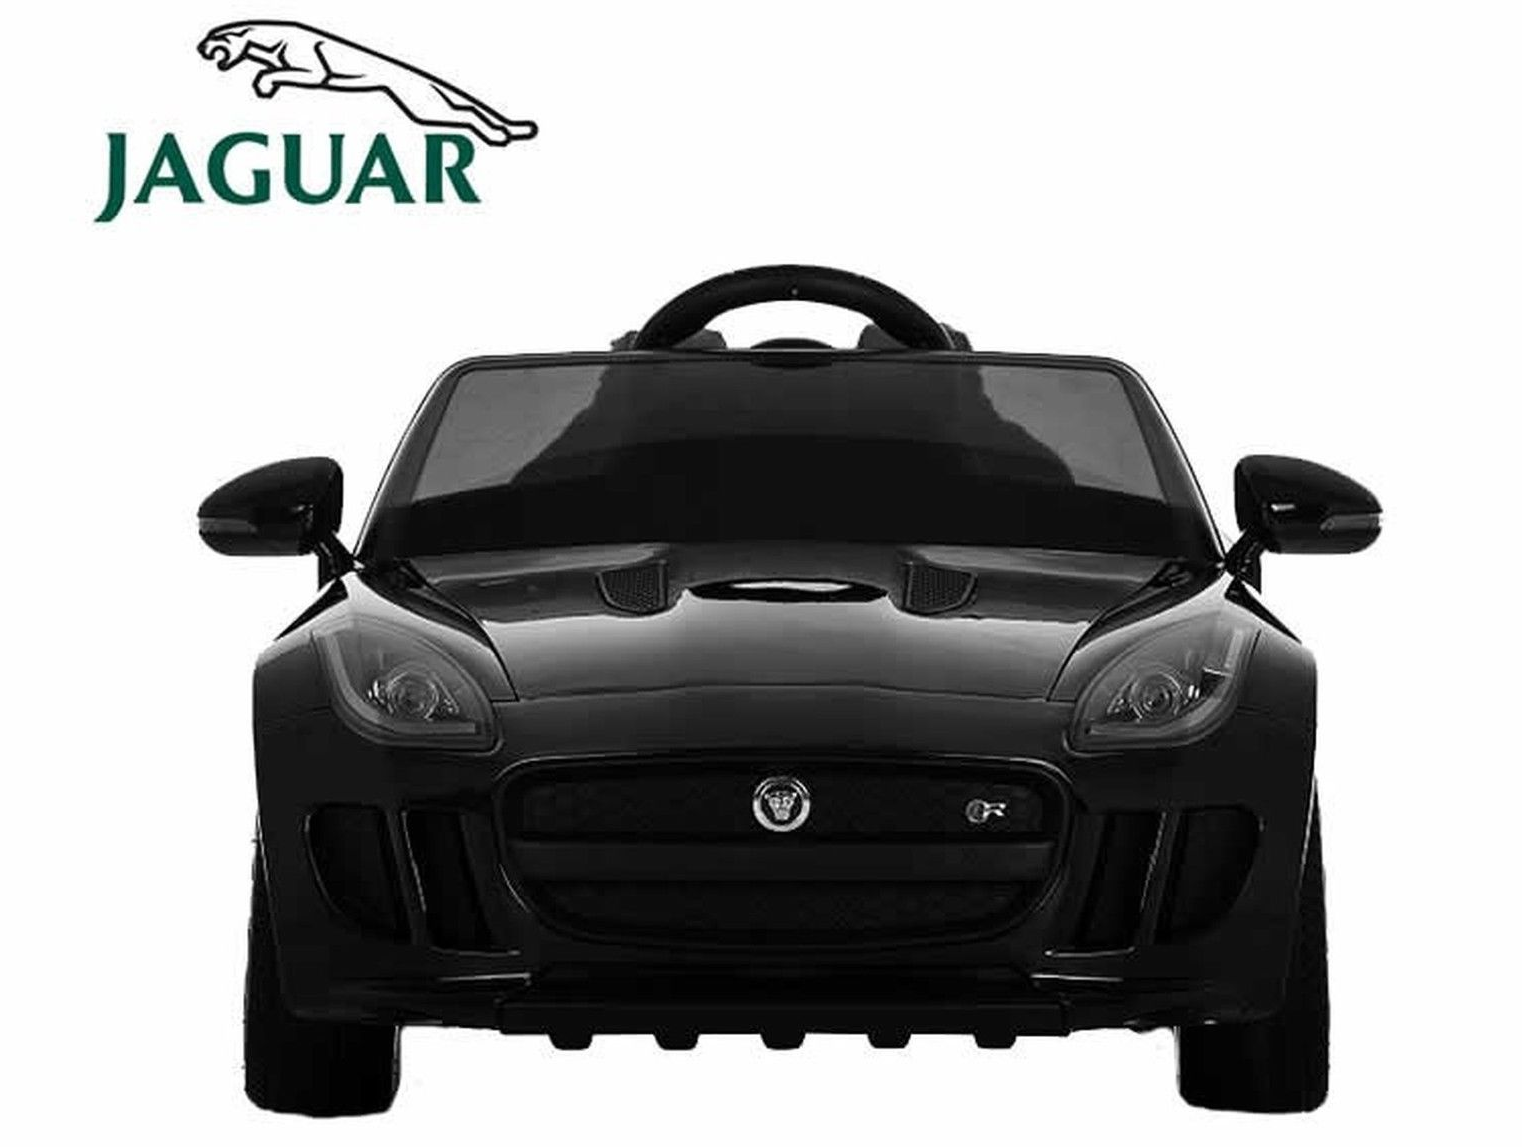 club jaguar xke img jaguars the calendar events click ajs see tulsa to please rest car here of